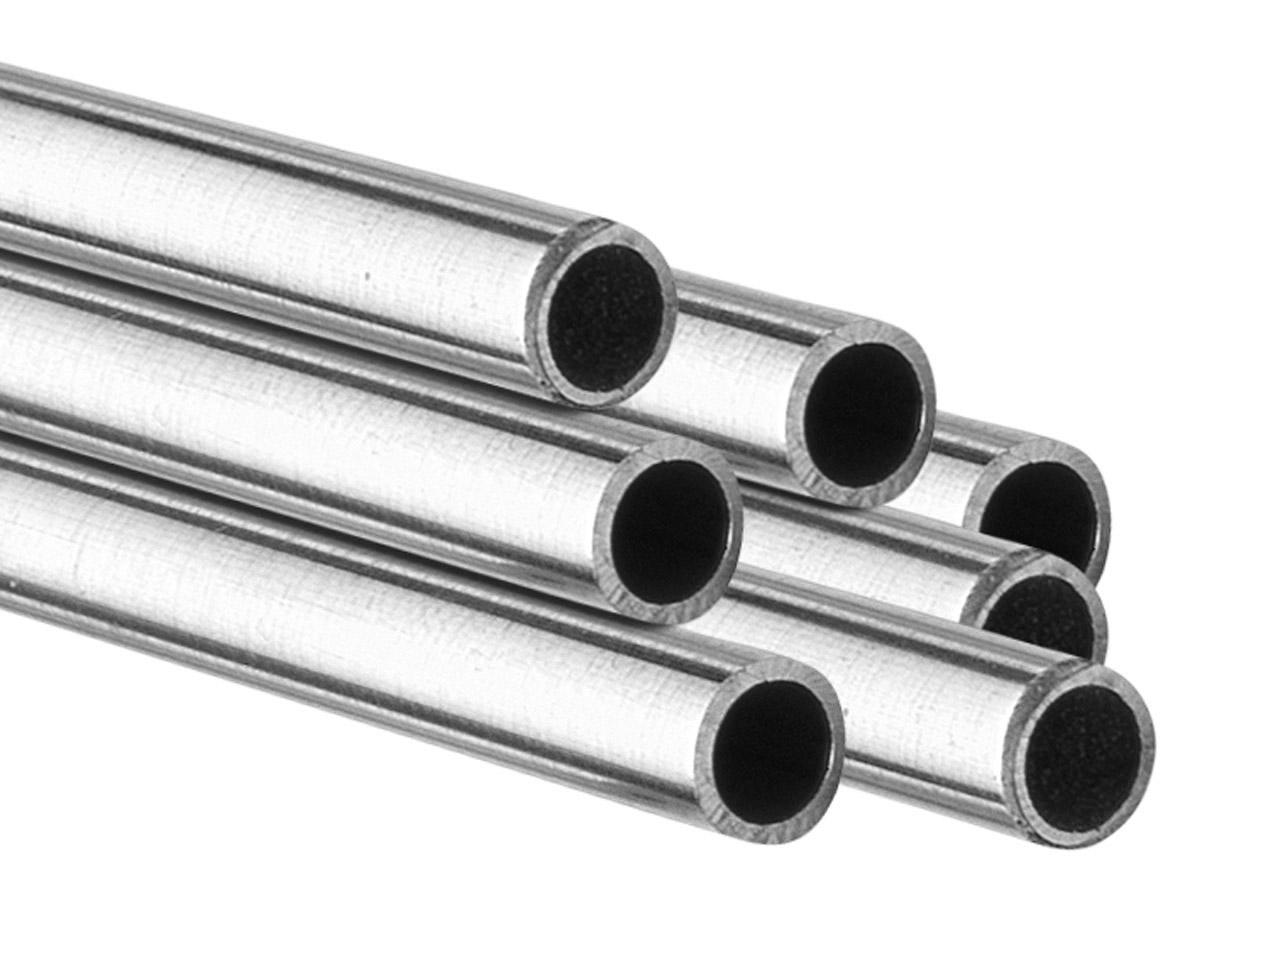 Gw Platinum Tube, Ref 8,           Outside Diameter 2.4mm,            Inside Diameter 1.6mm, 0.4mm Wall  Thickness